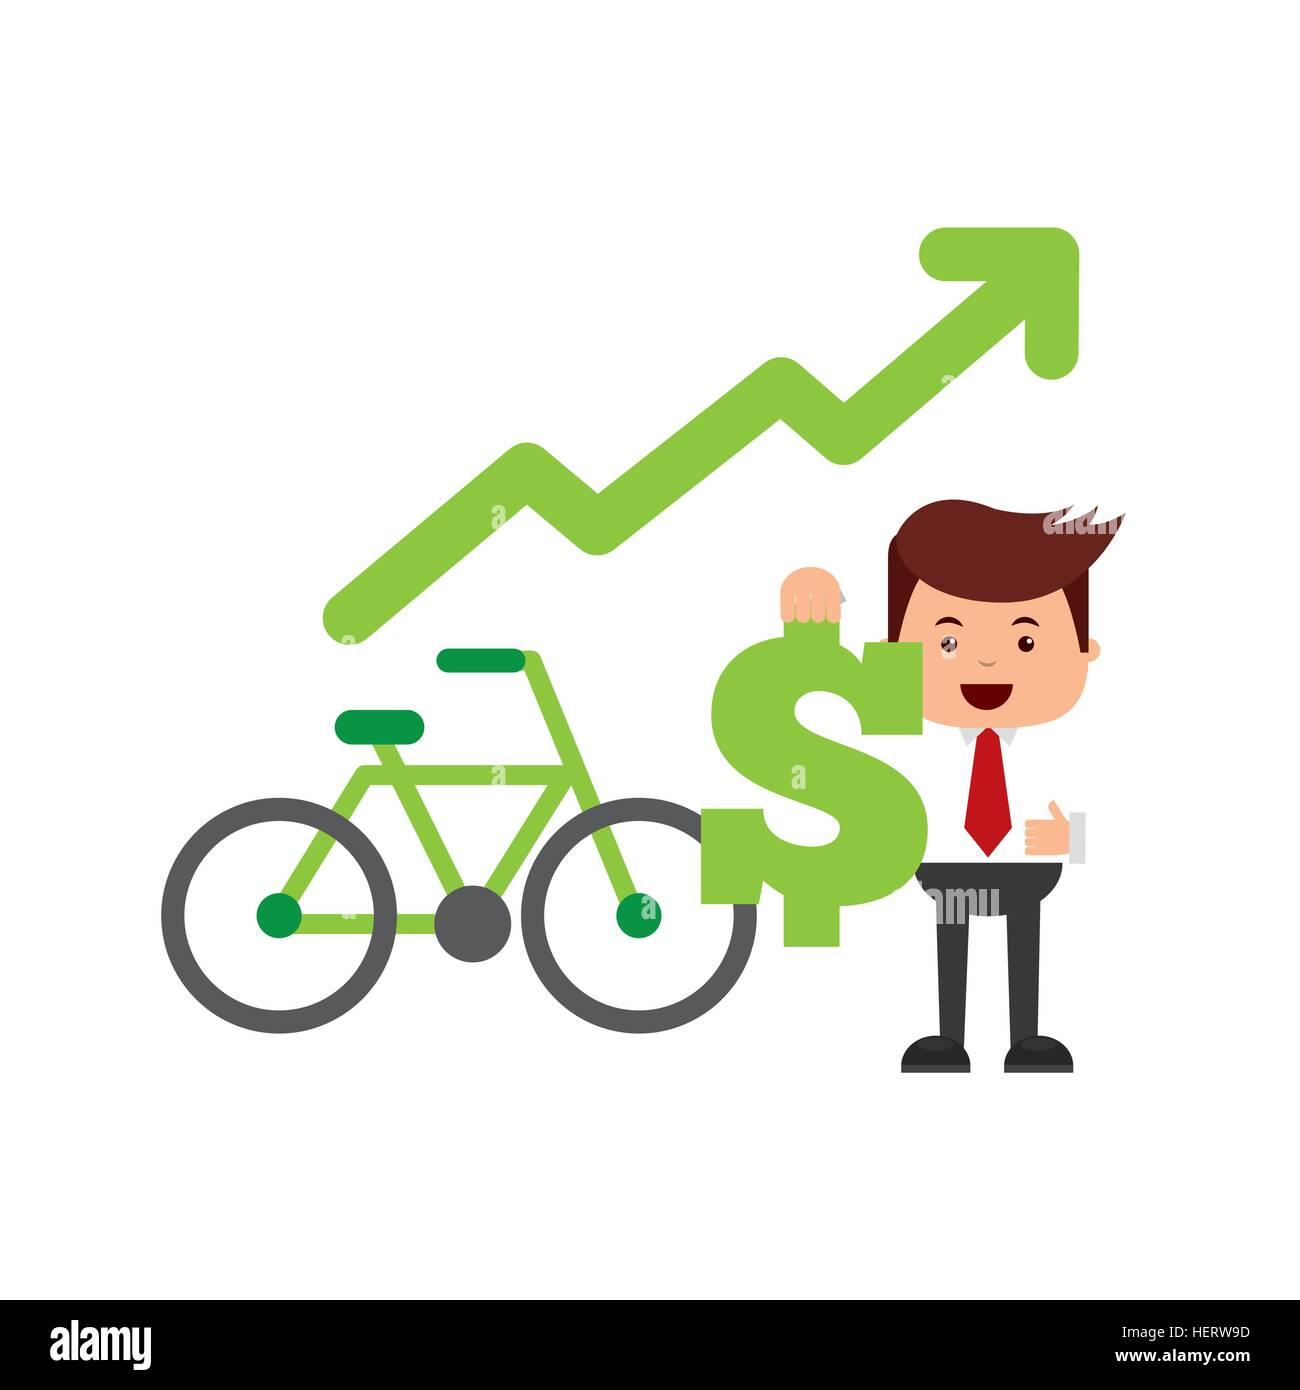 businessman holding a money sign and bicycle icon over white background. think green and sustainability design. - Stock Image